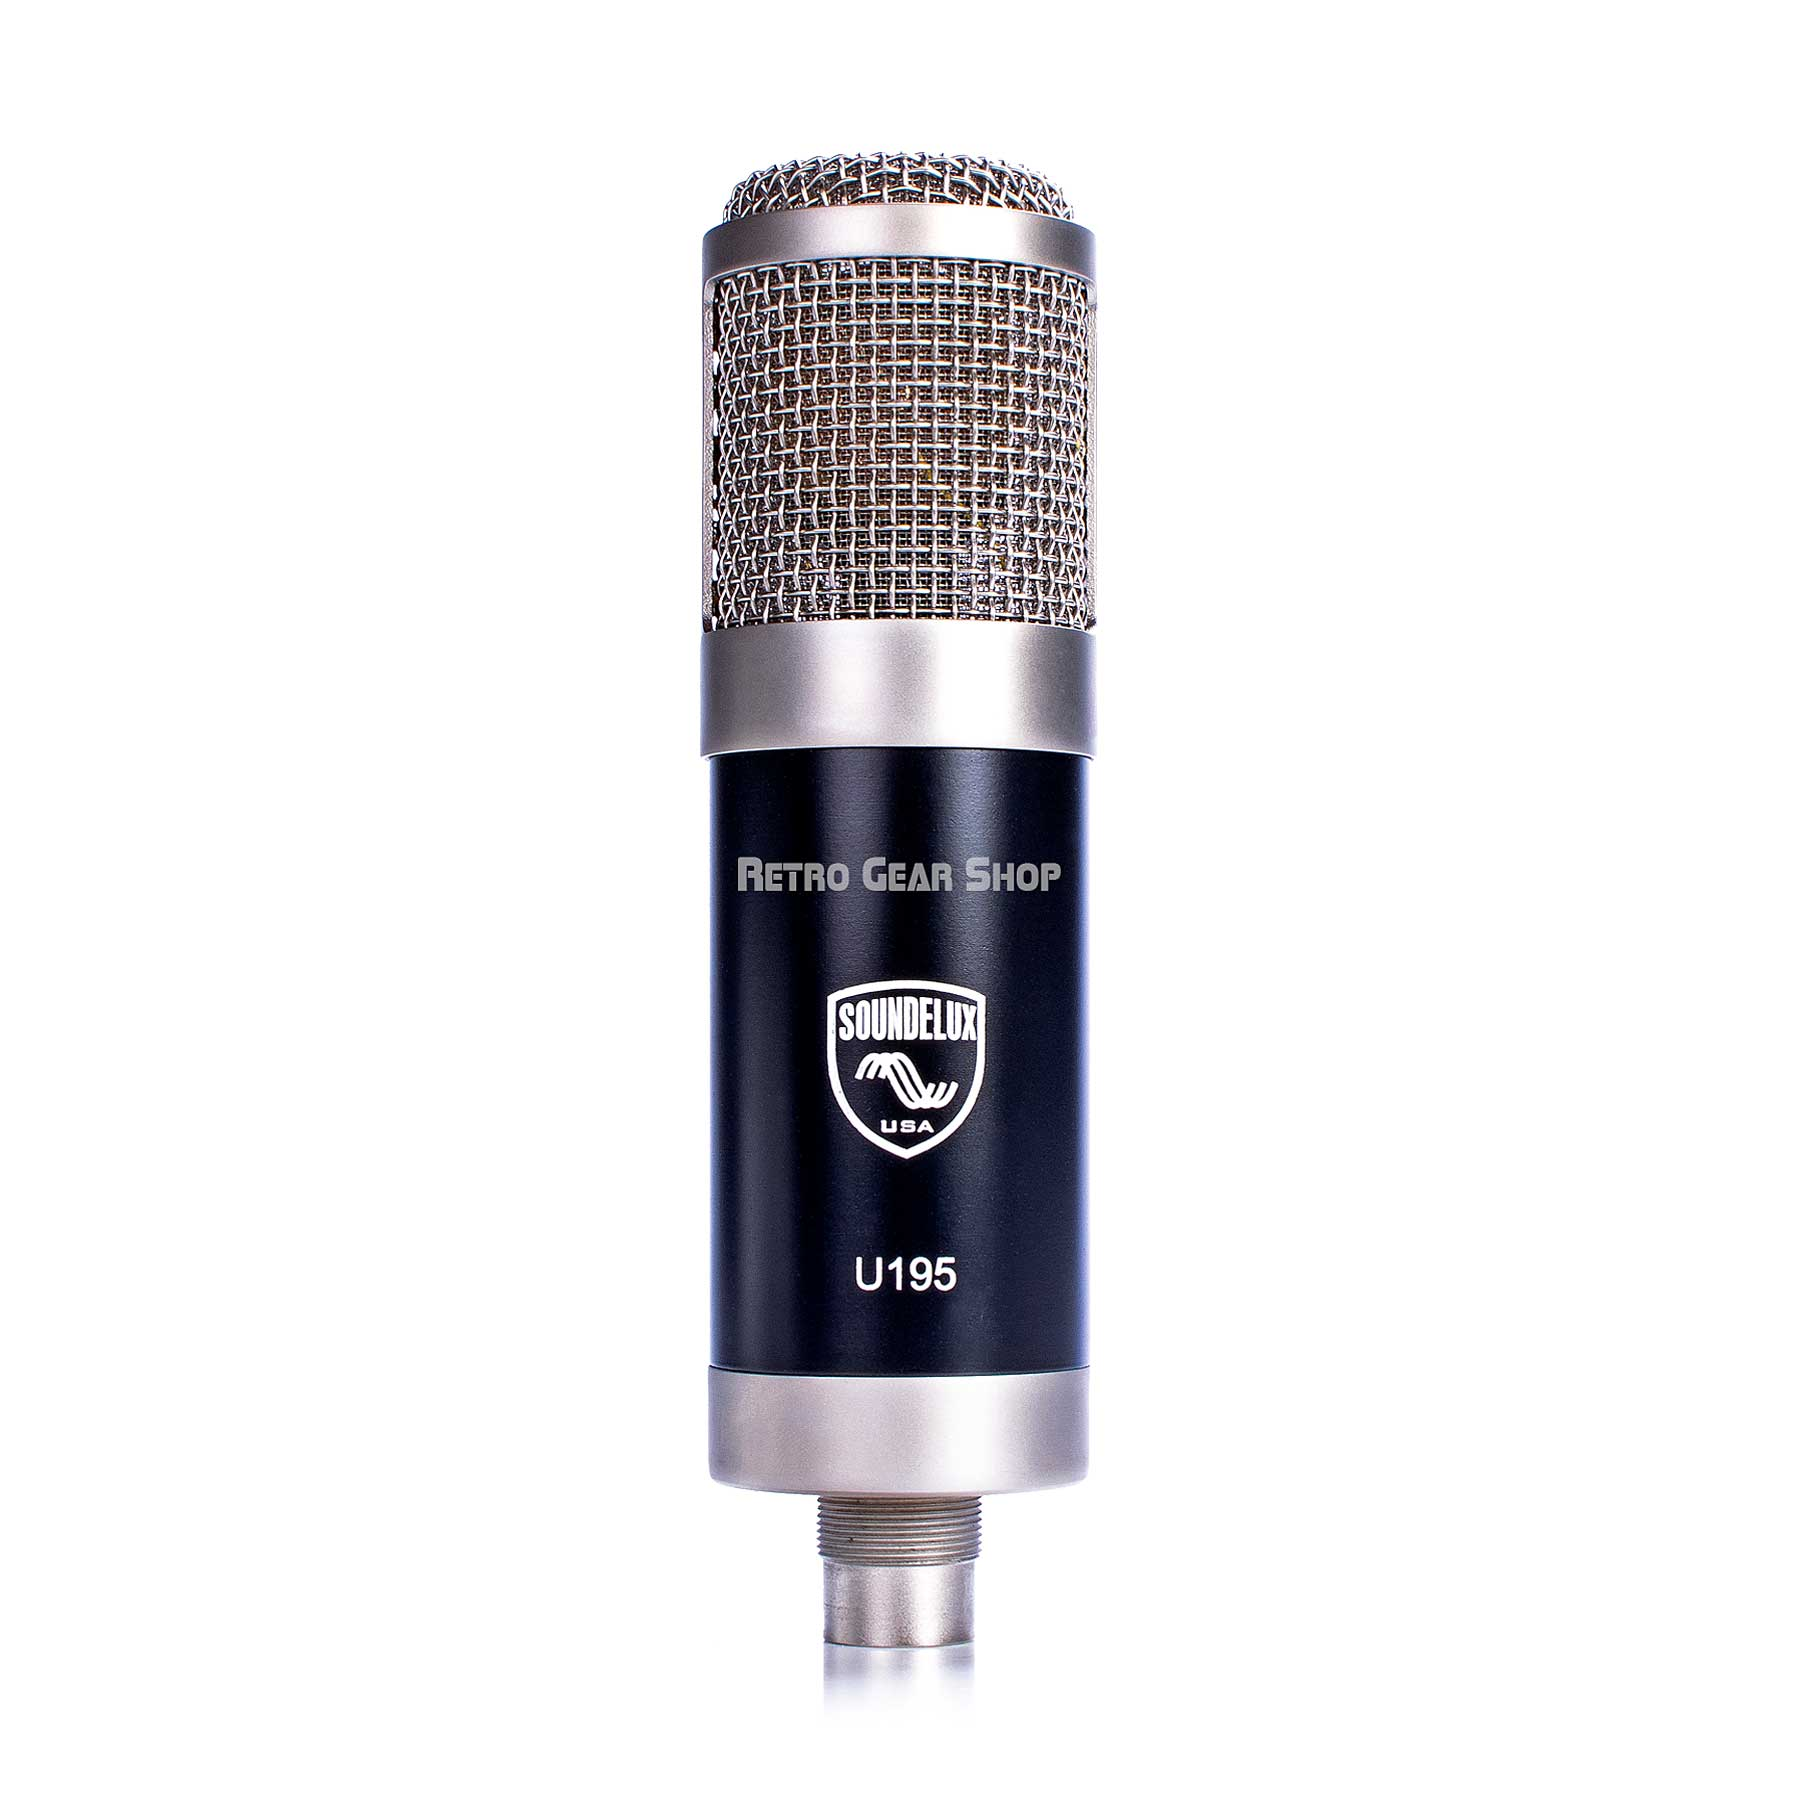 Soundelux Microphones